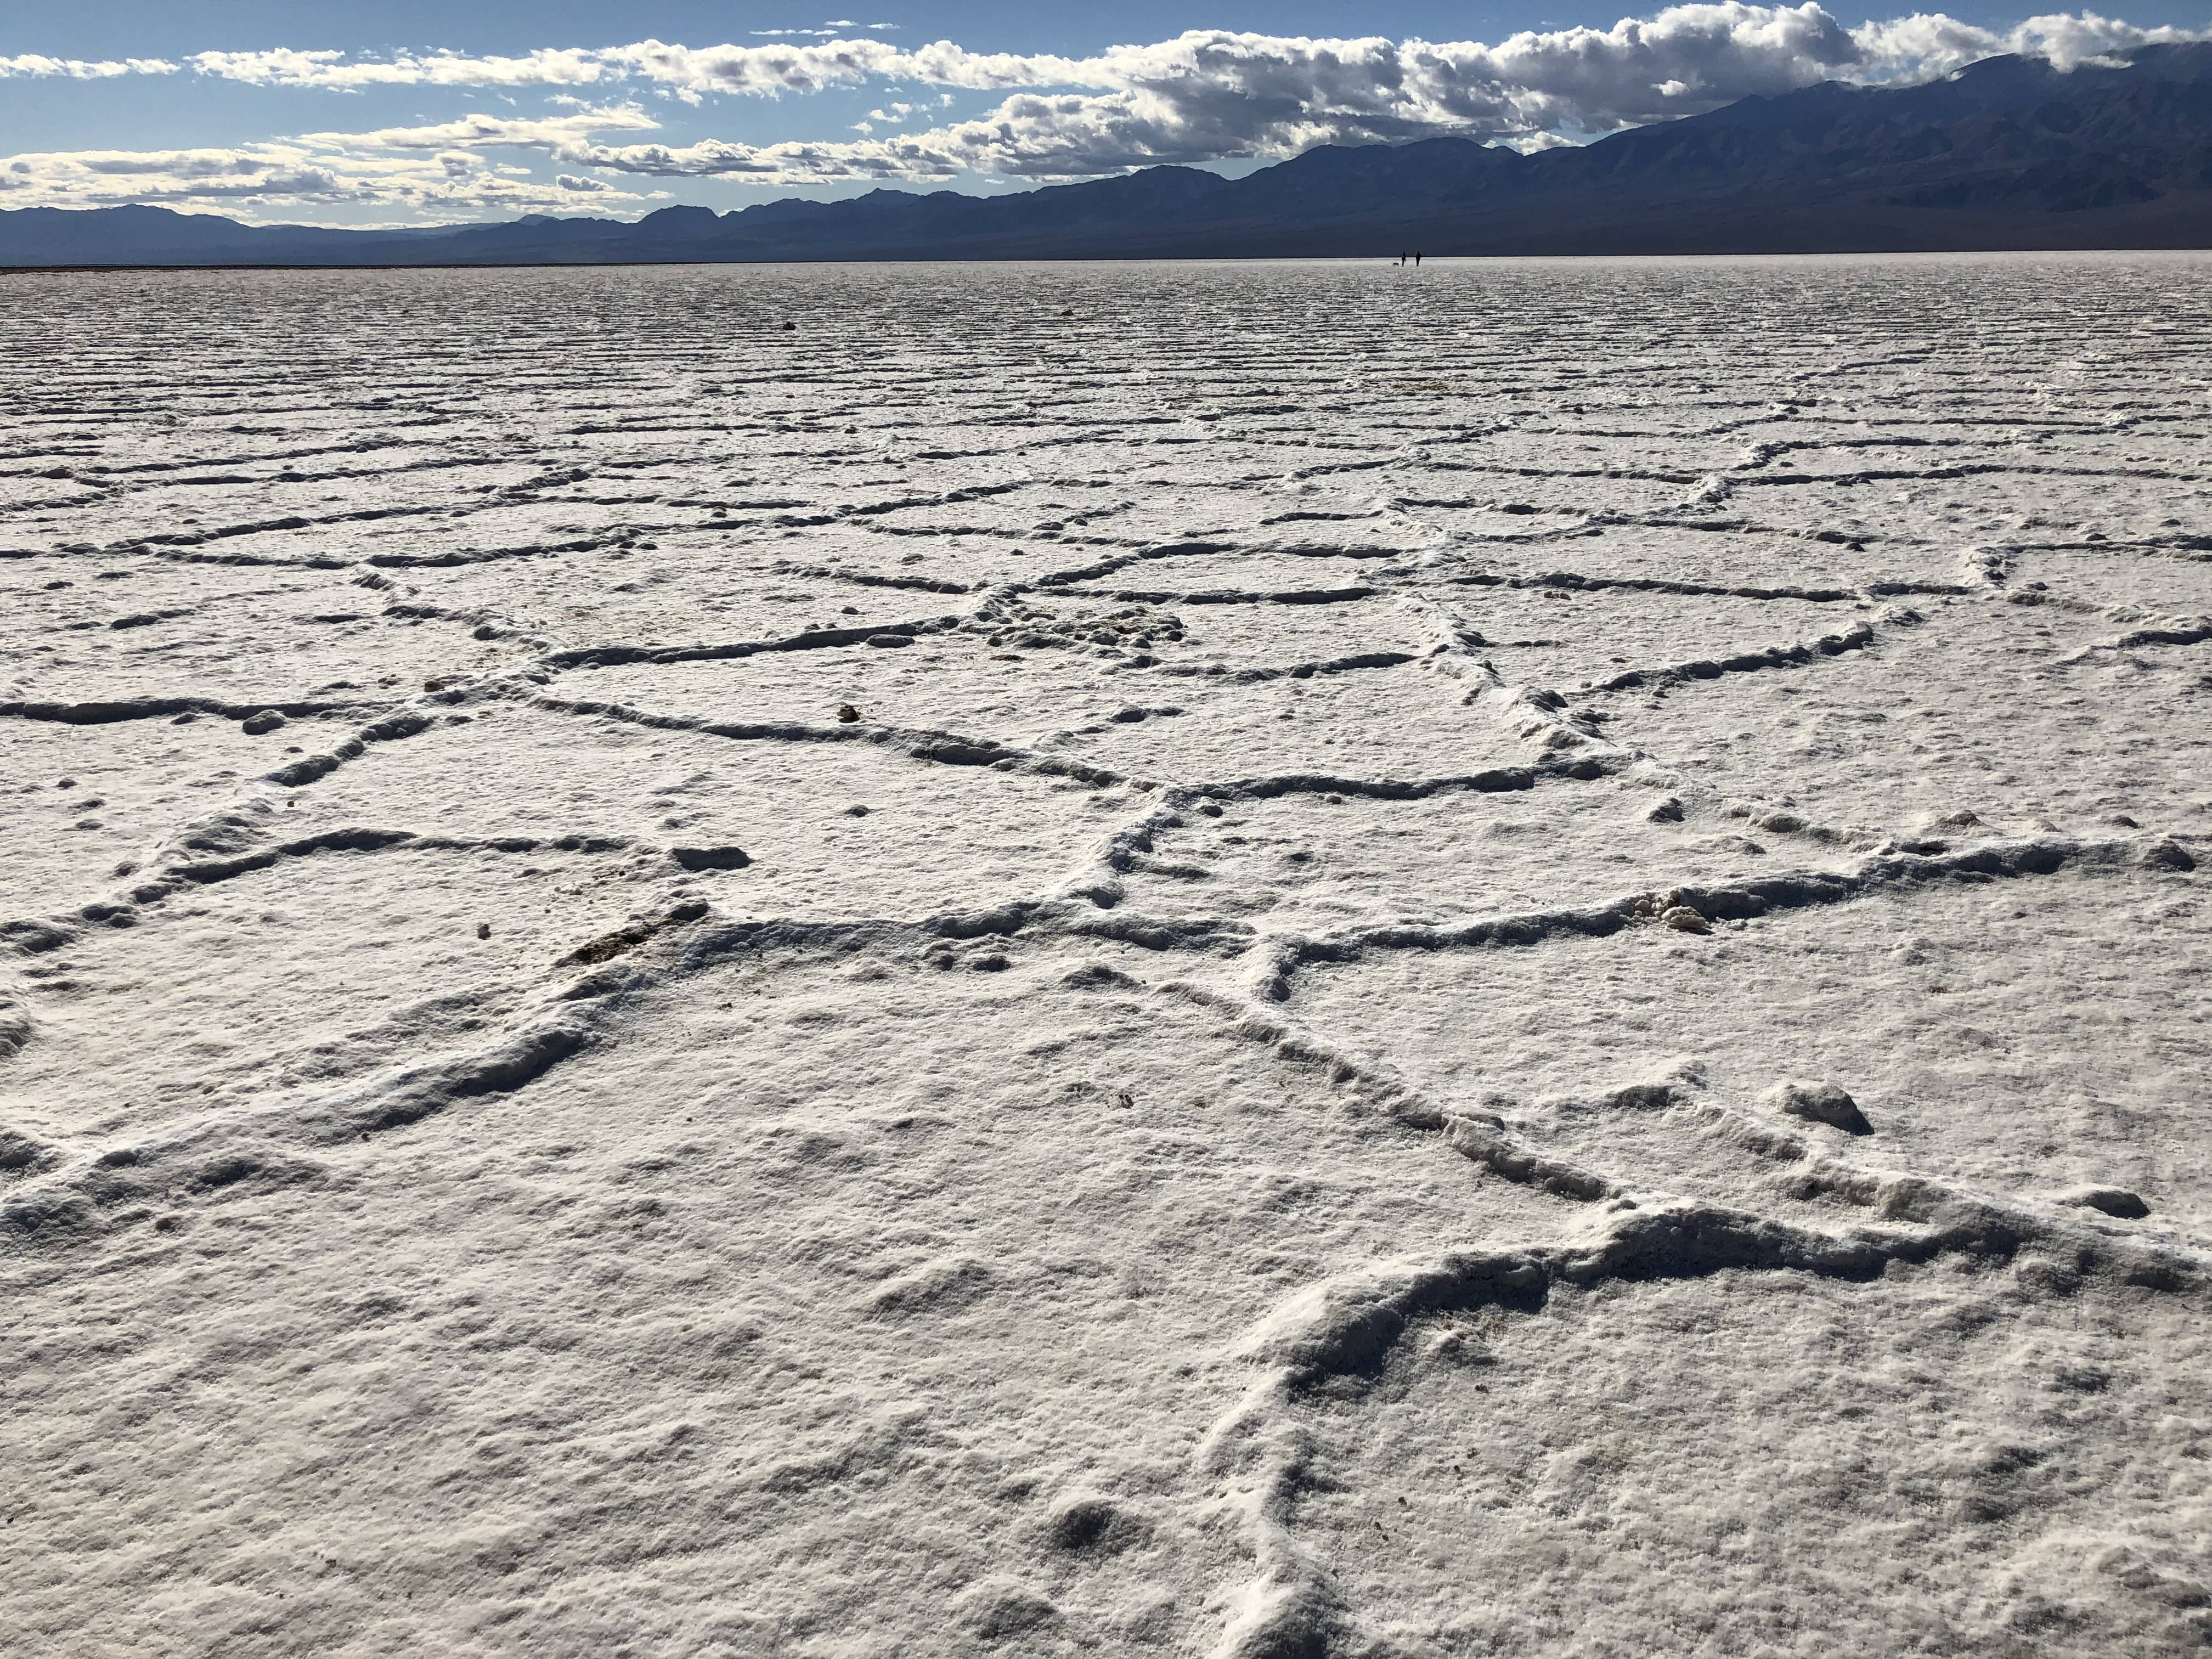 The vast surreal salt flats of Badwater Basin change constantly. Salt crystals expand, pushing the crust of salt into rough, chaotic forms.